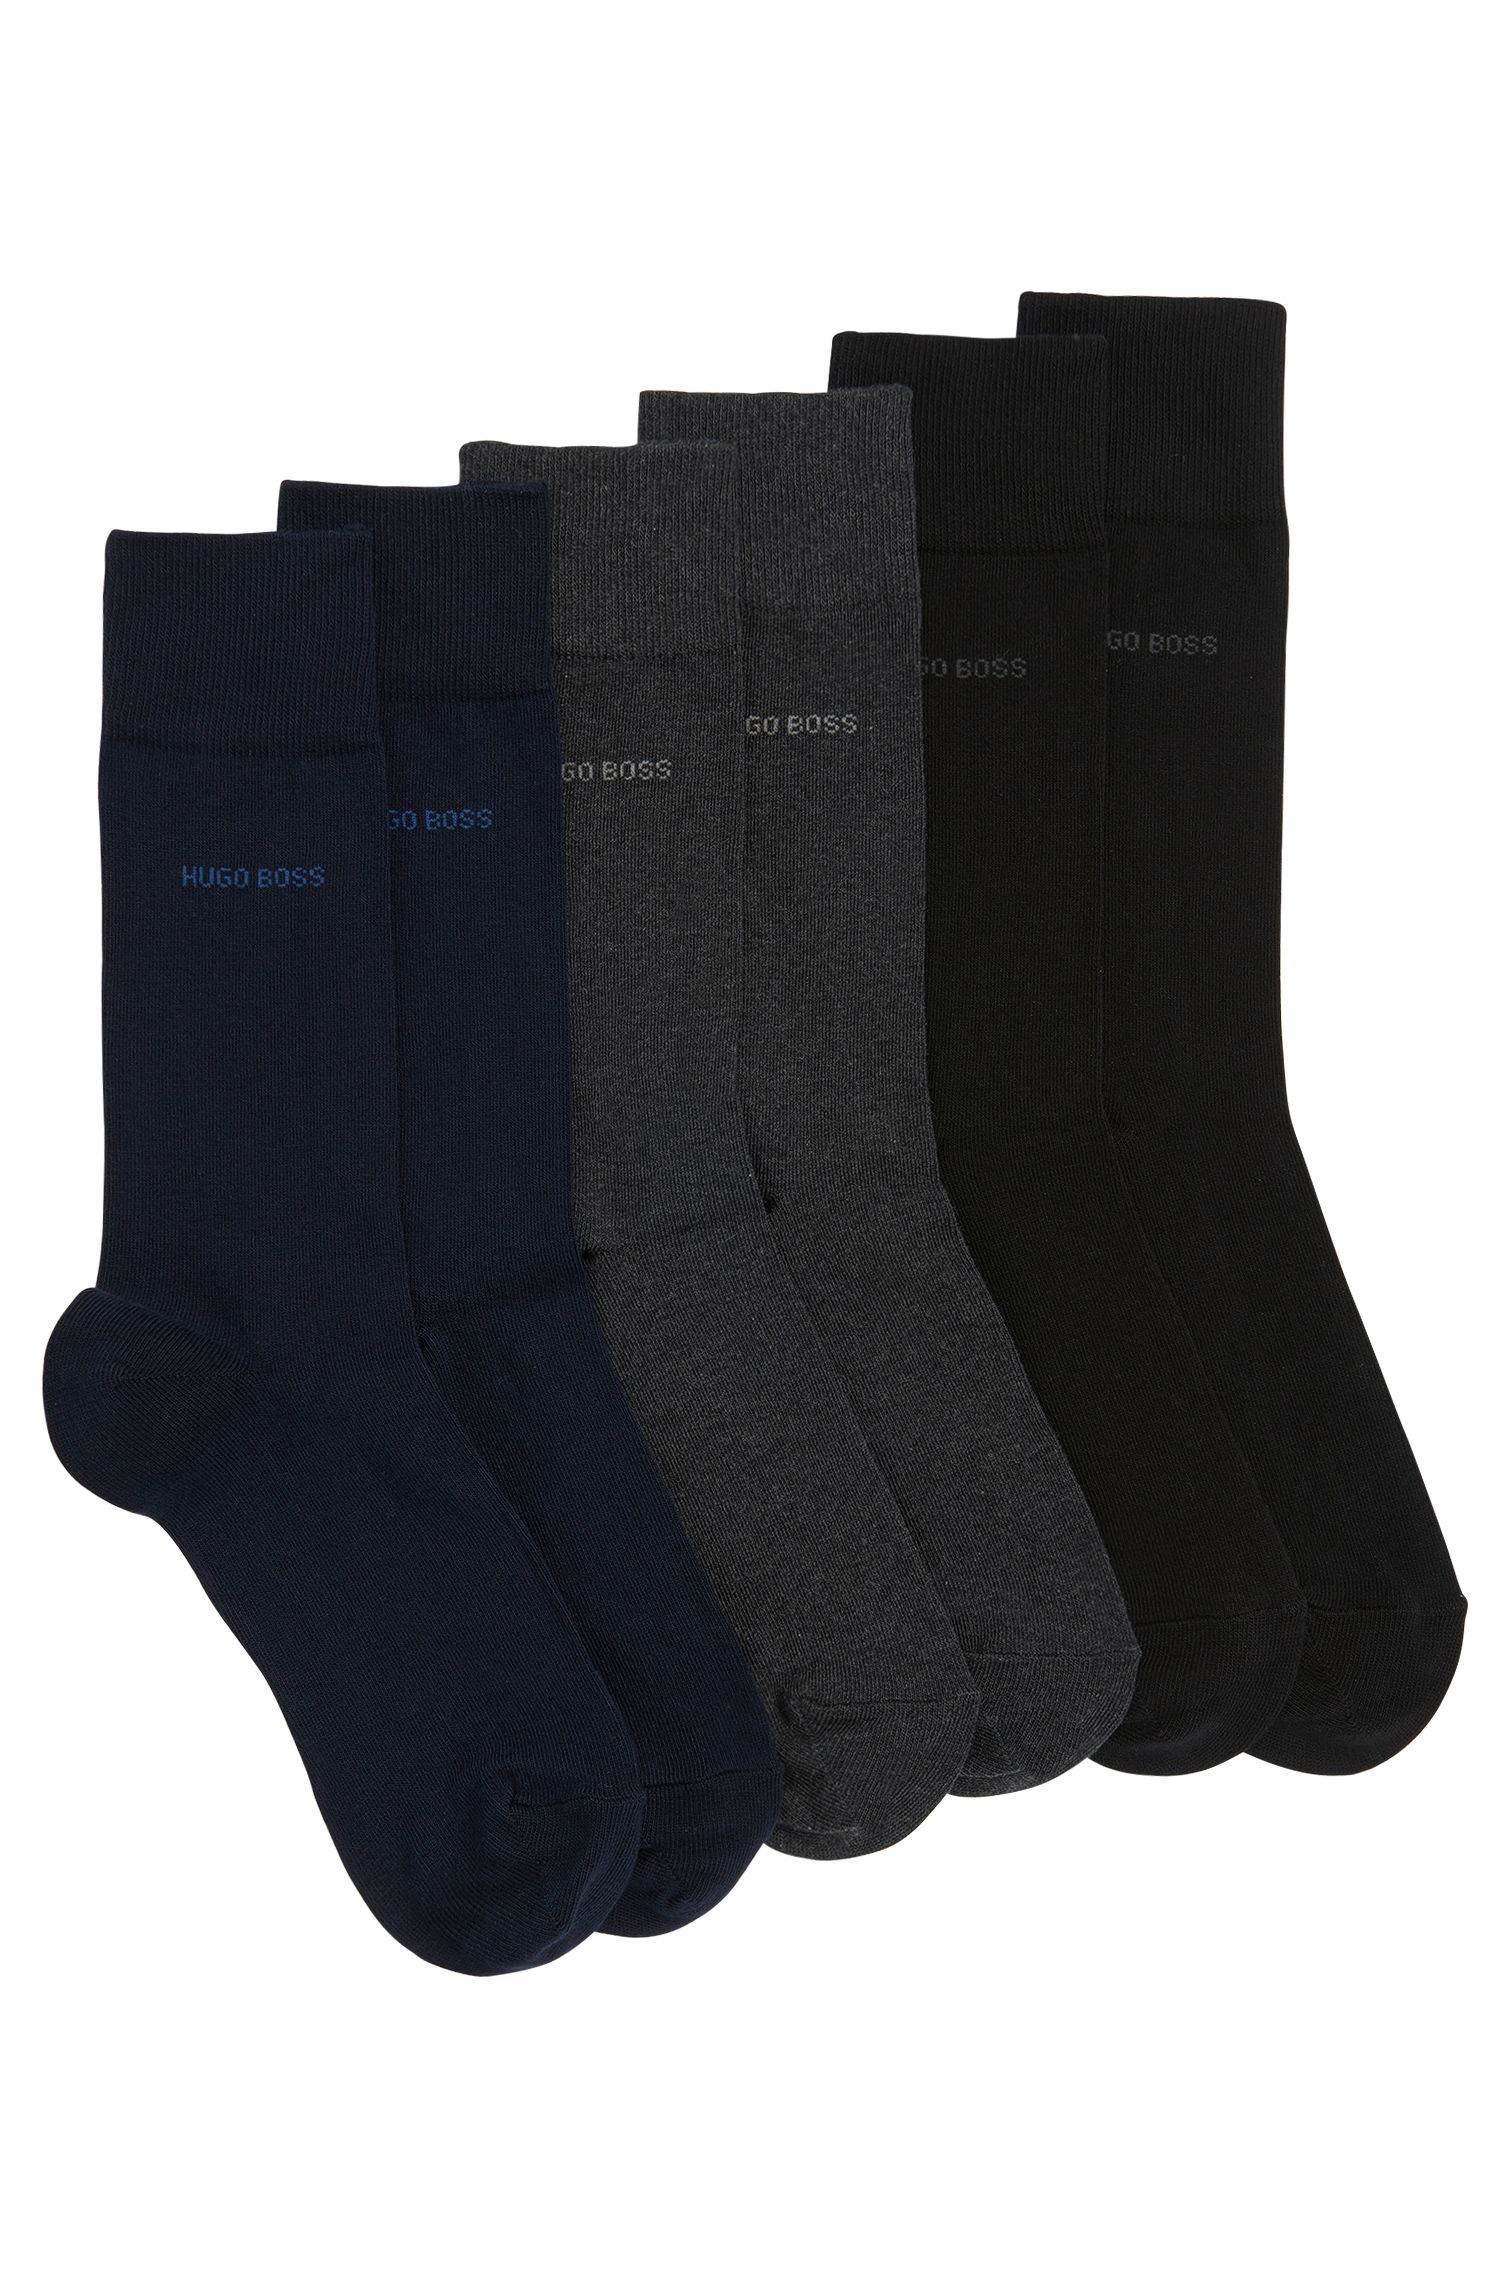 Three-pack of regular-length socks